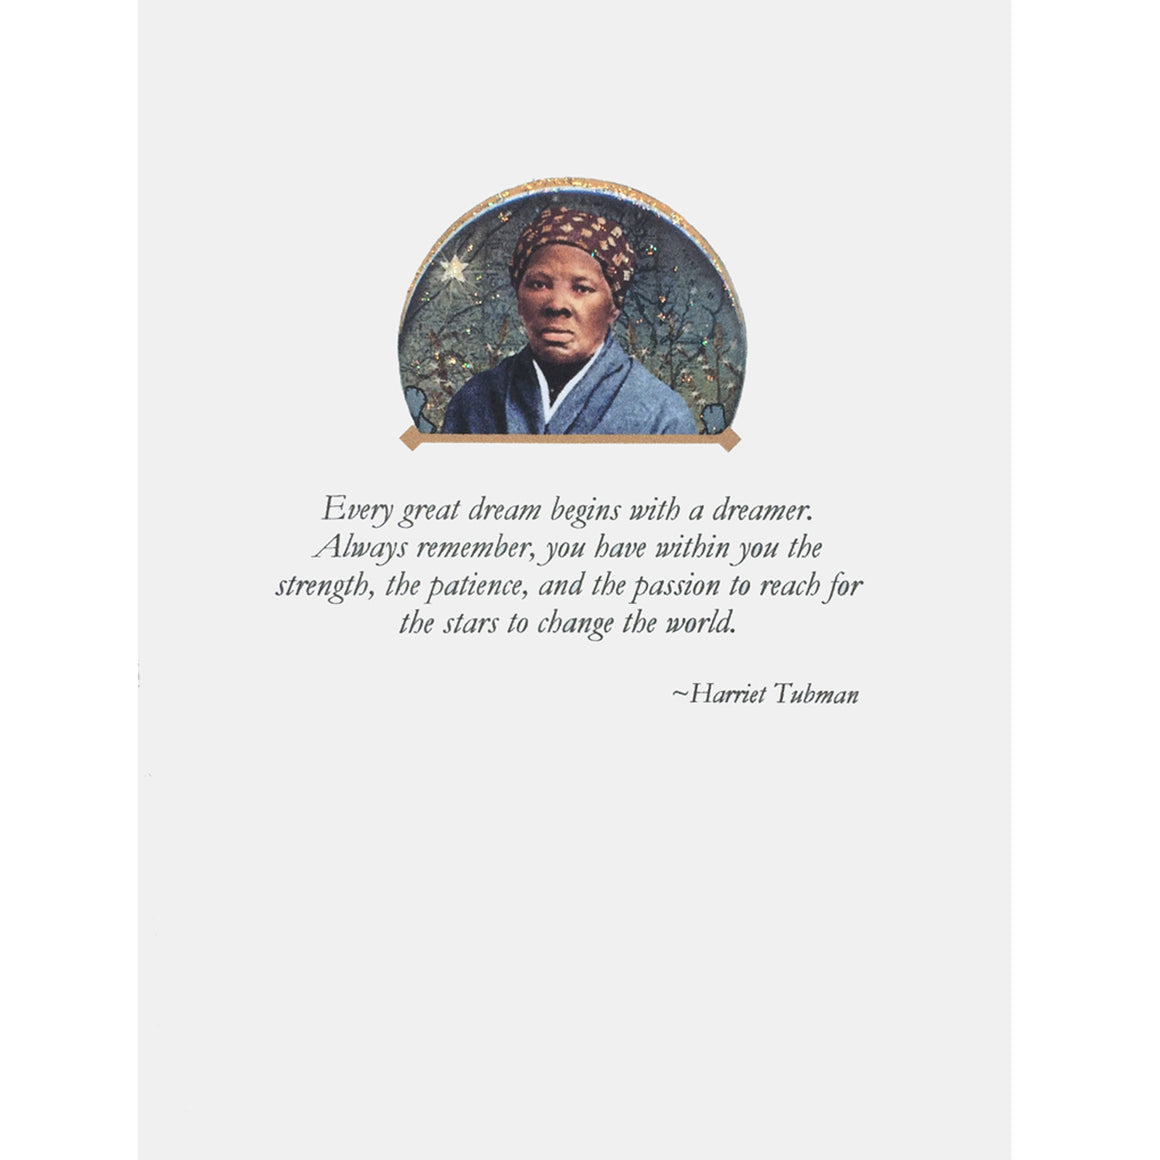 Harriet Tubman Quote Card